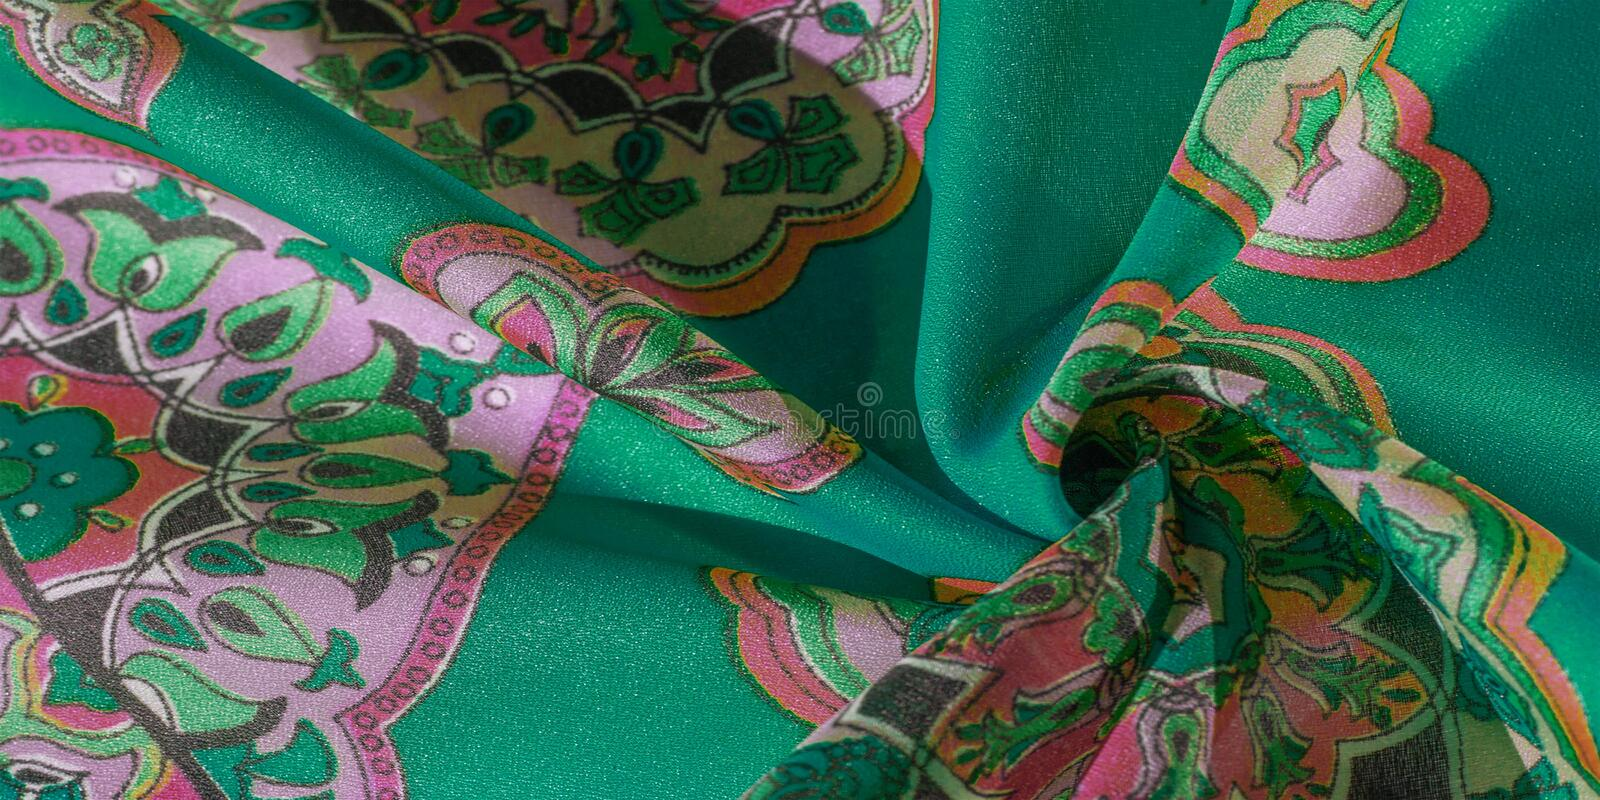 Texture, background, multicolored silk fabric with a pattern of patterns on a green background, jacquard pattern stock photography